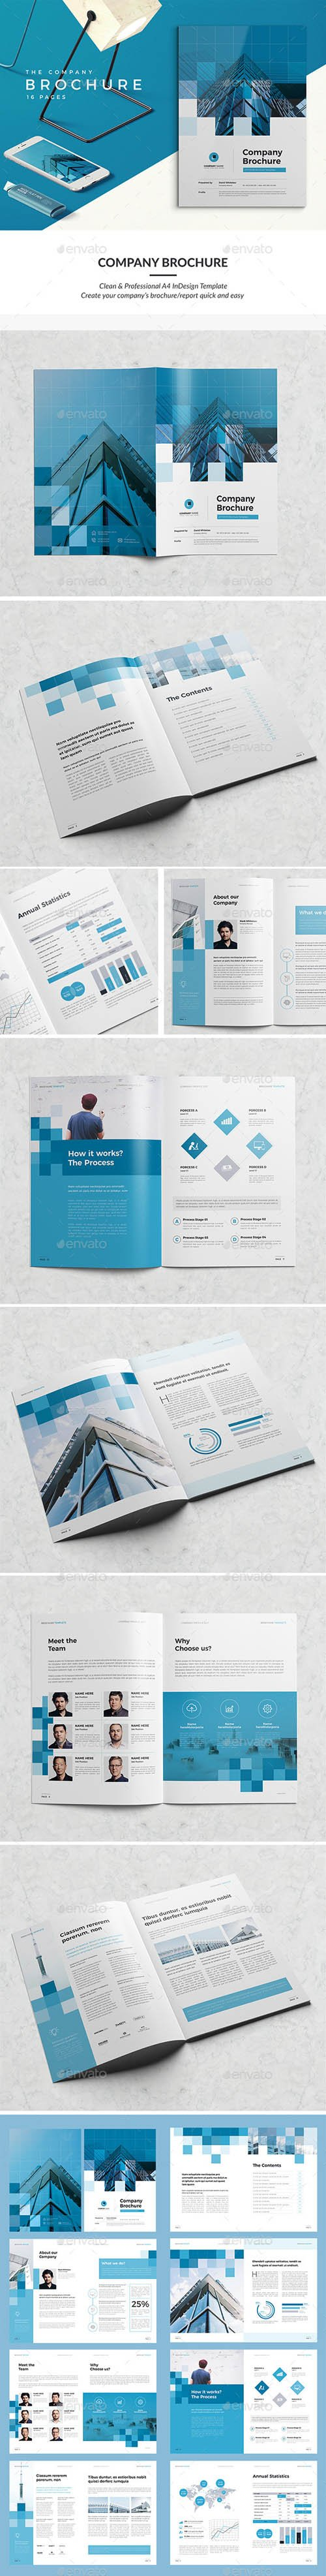 Modern Company Brochure 16 Pages 20346788